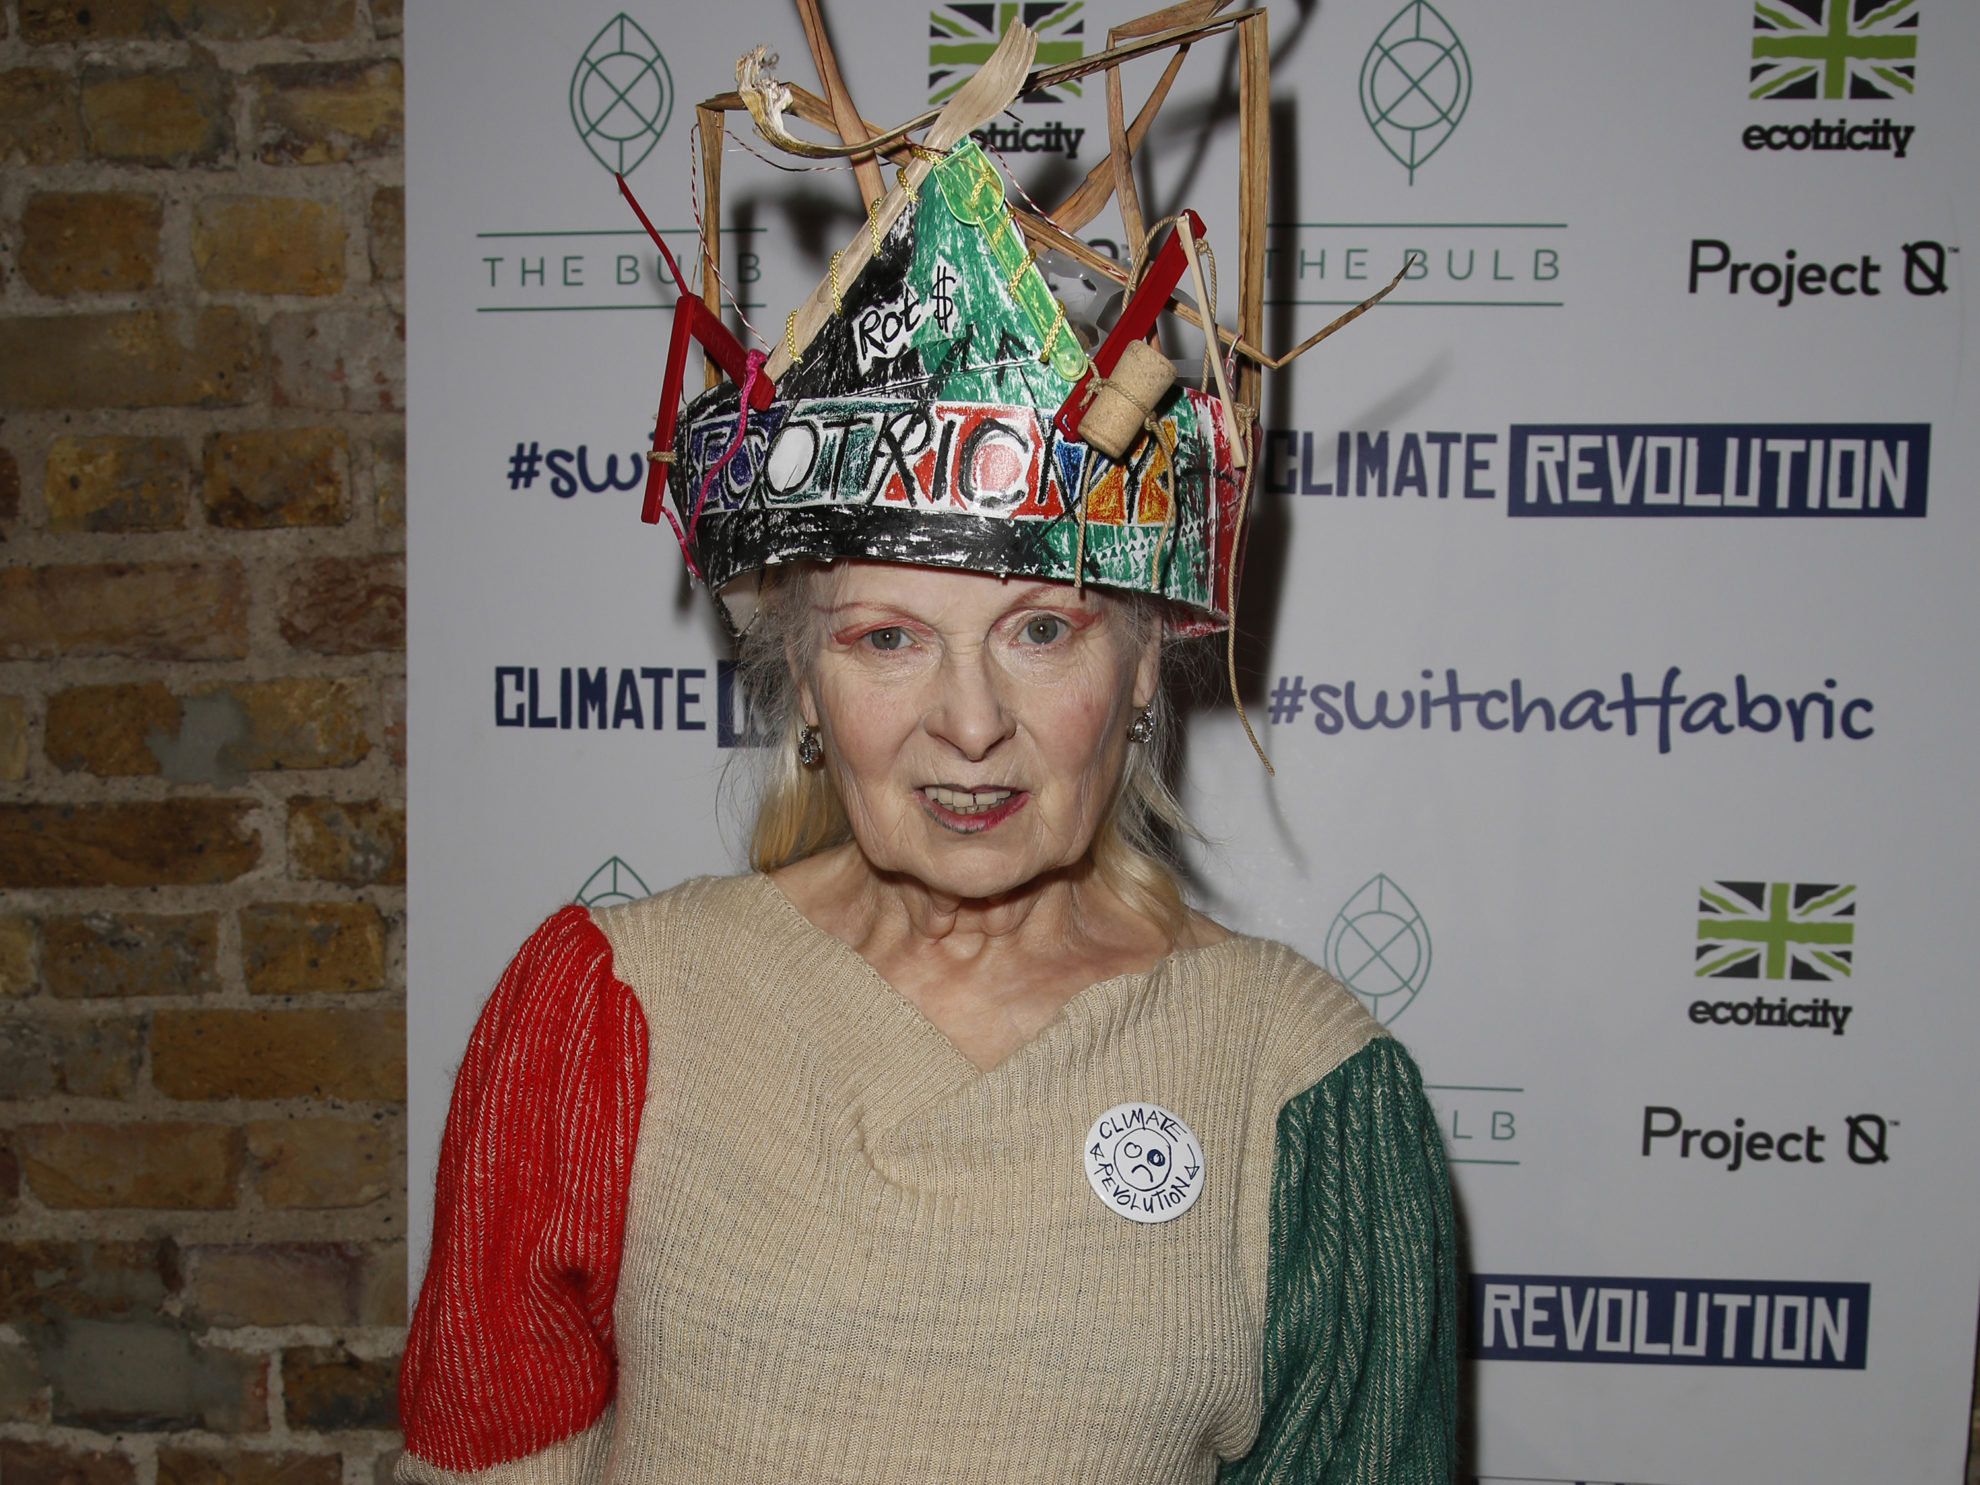 The Bulb | Vivienne Westwood Says Switch